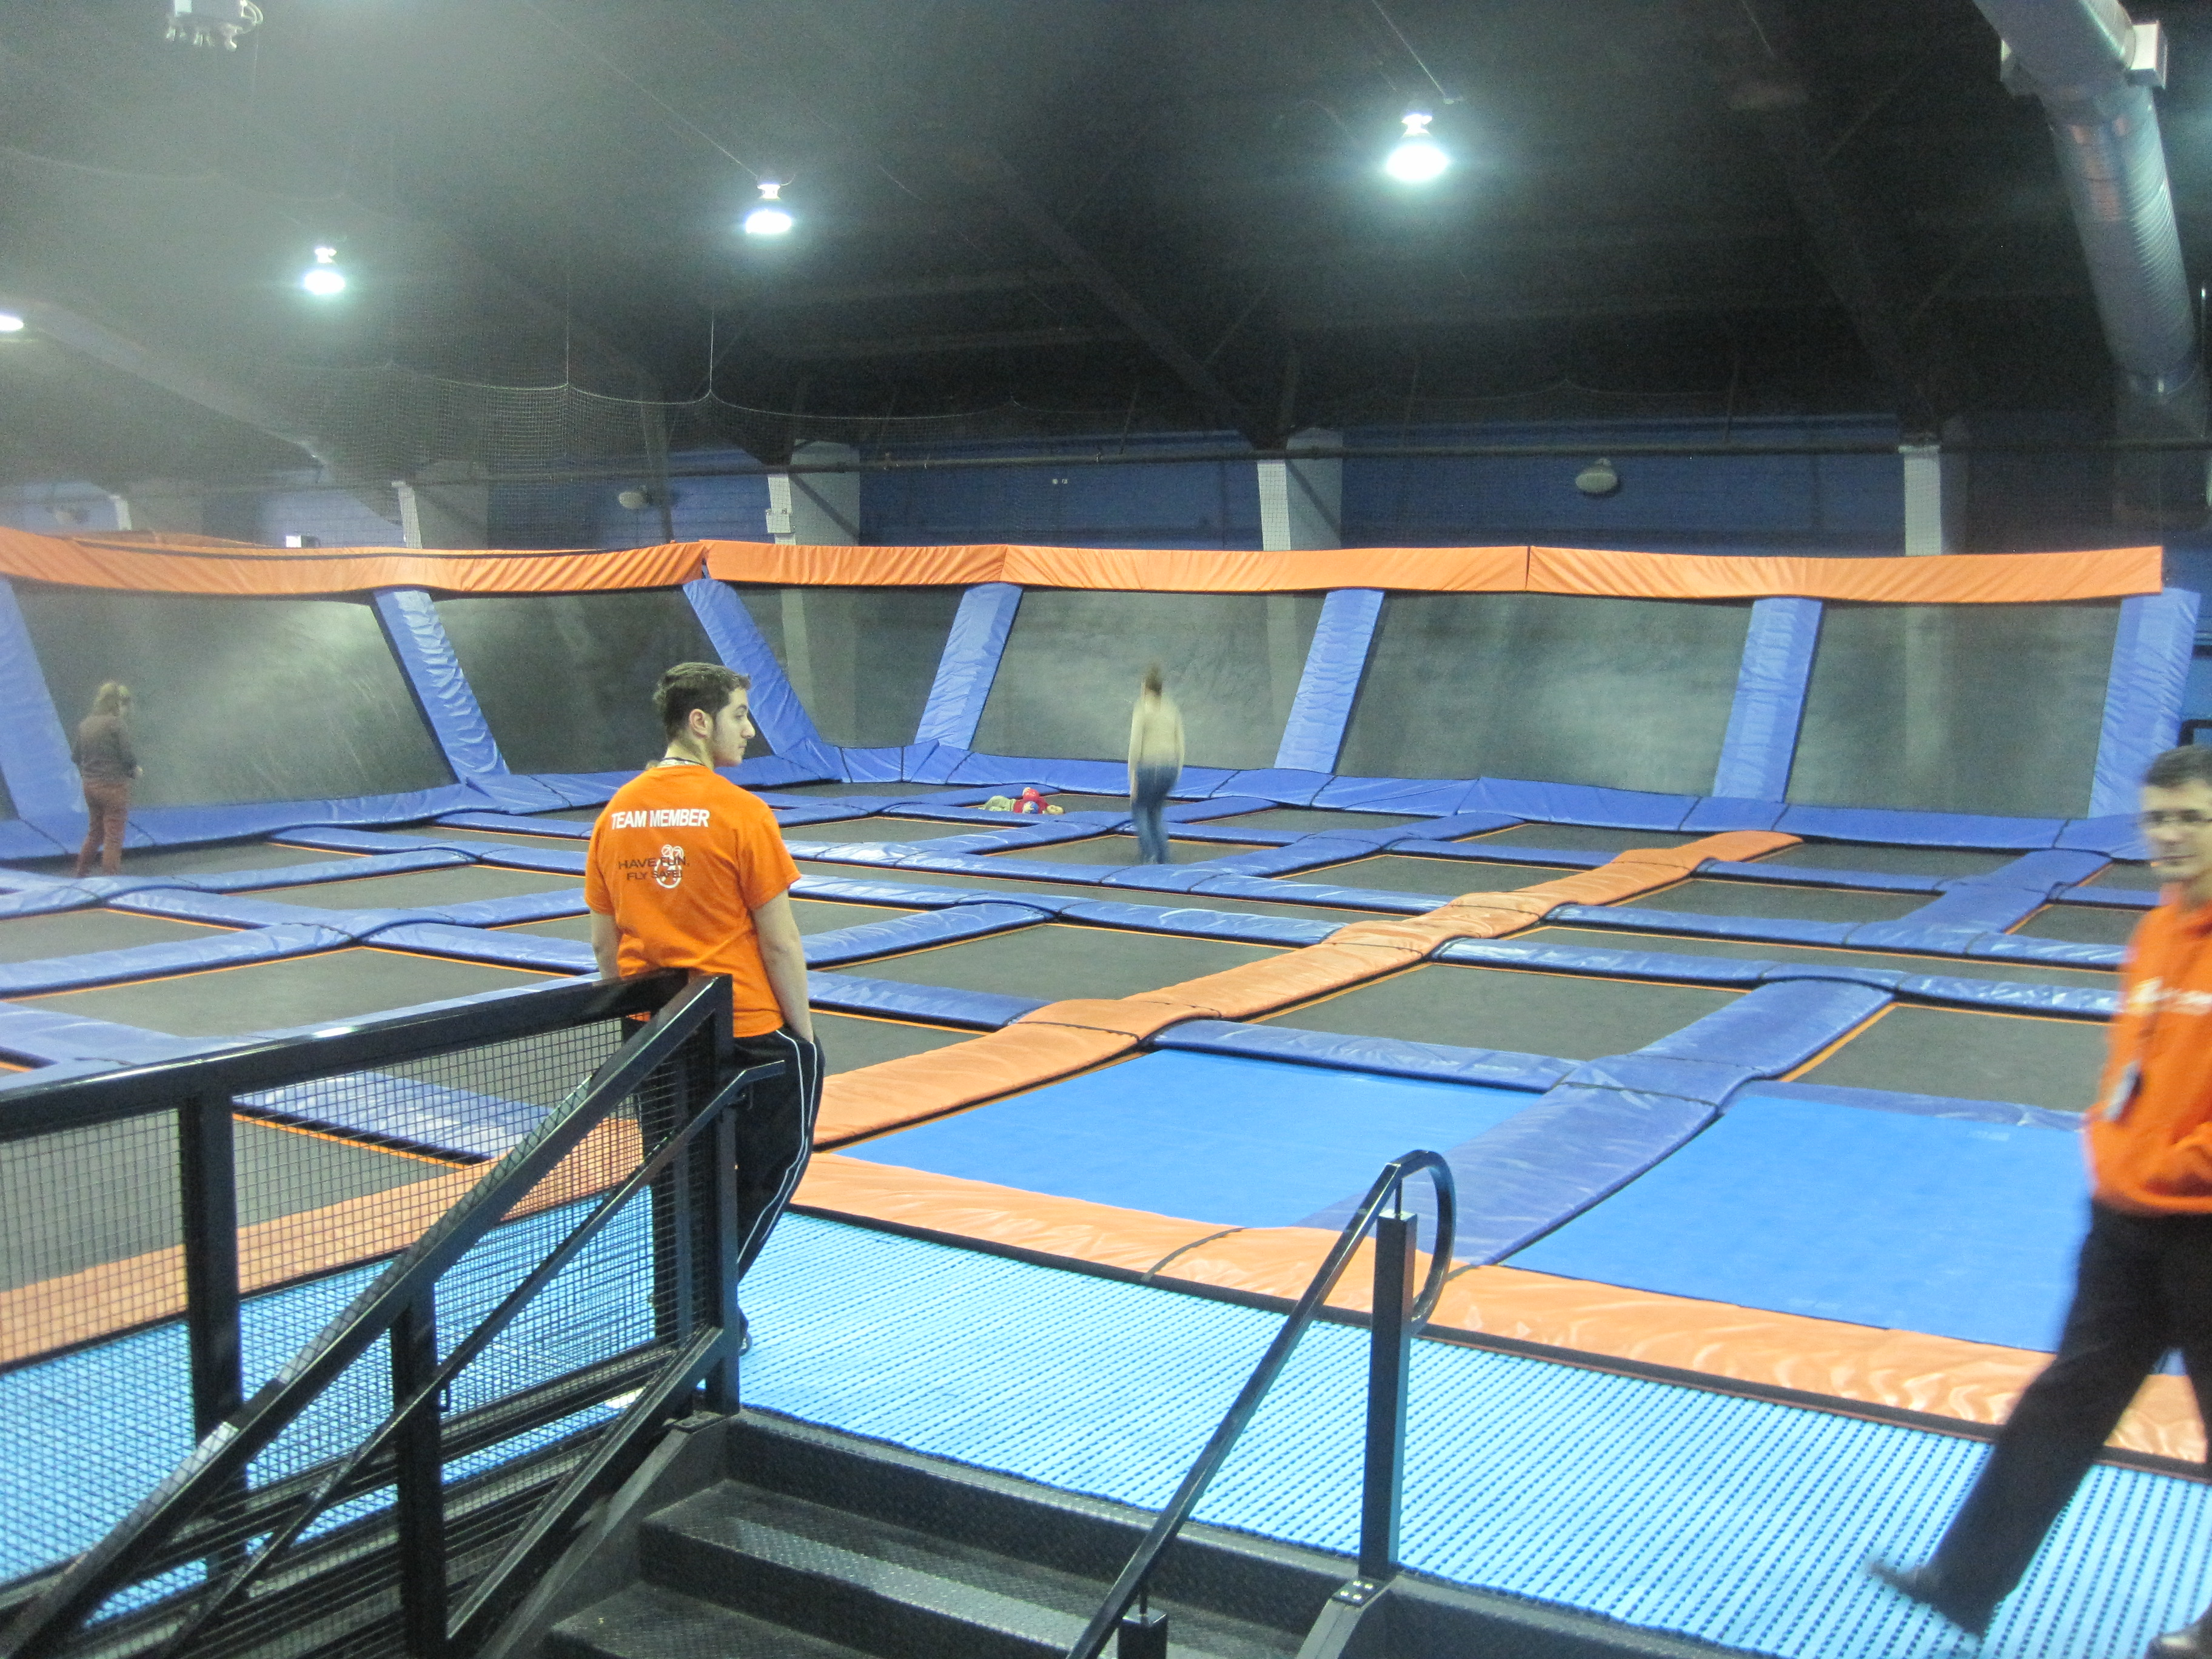 Trampoline Park 079 (2).jpg